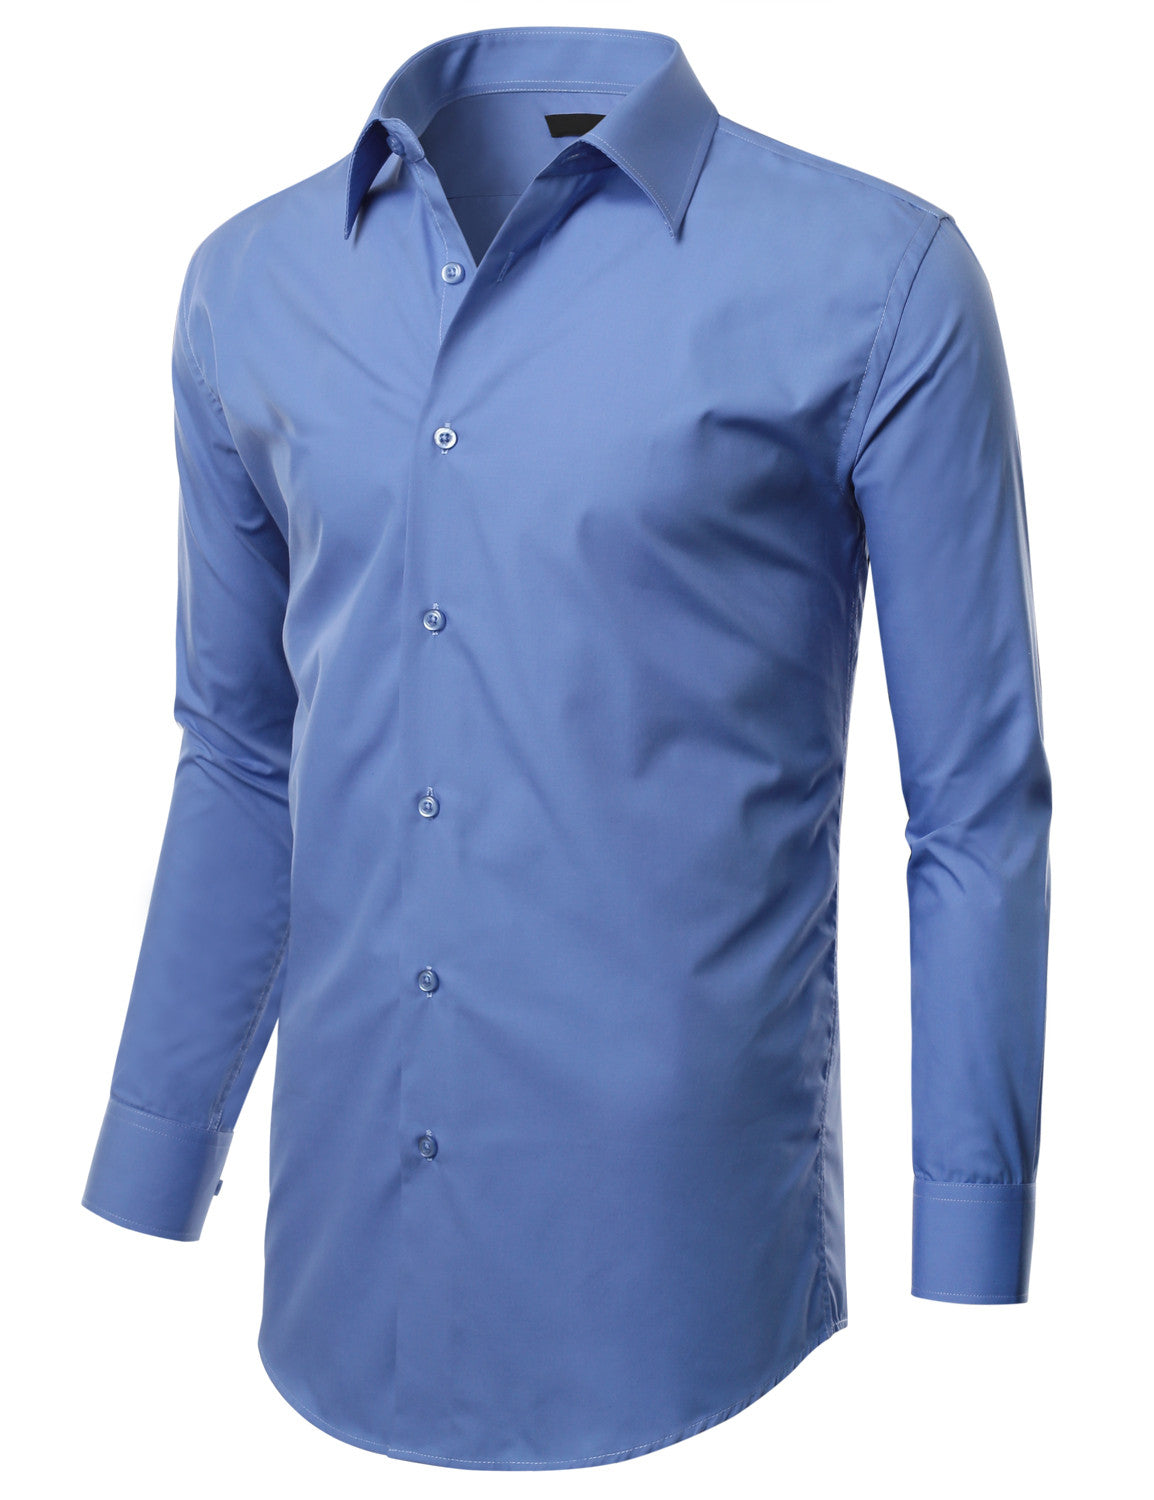 TC607AQUA Aqua Slim Fit Dress Shirt w/ Reversible Cuff (Big & Tall Available)- MONDAYSUIT